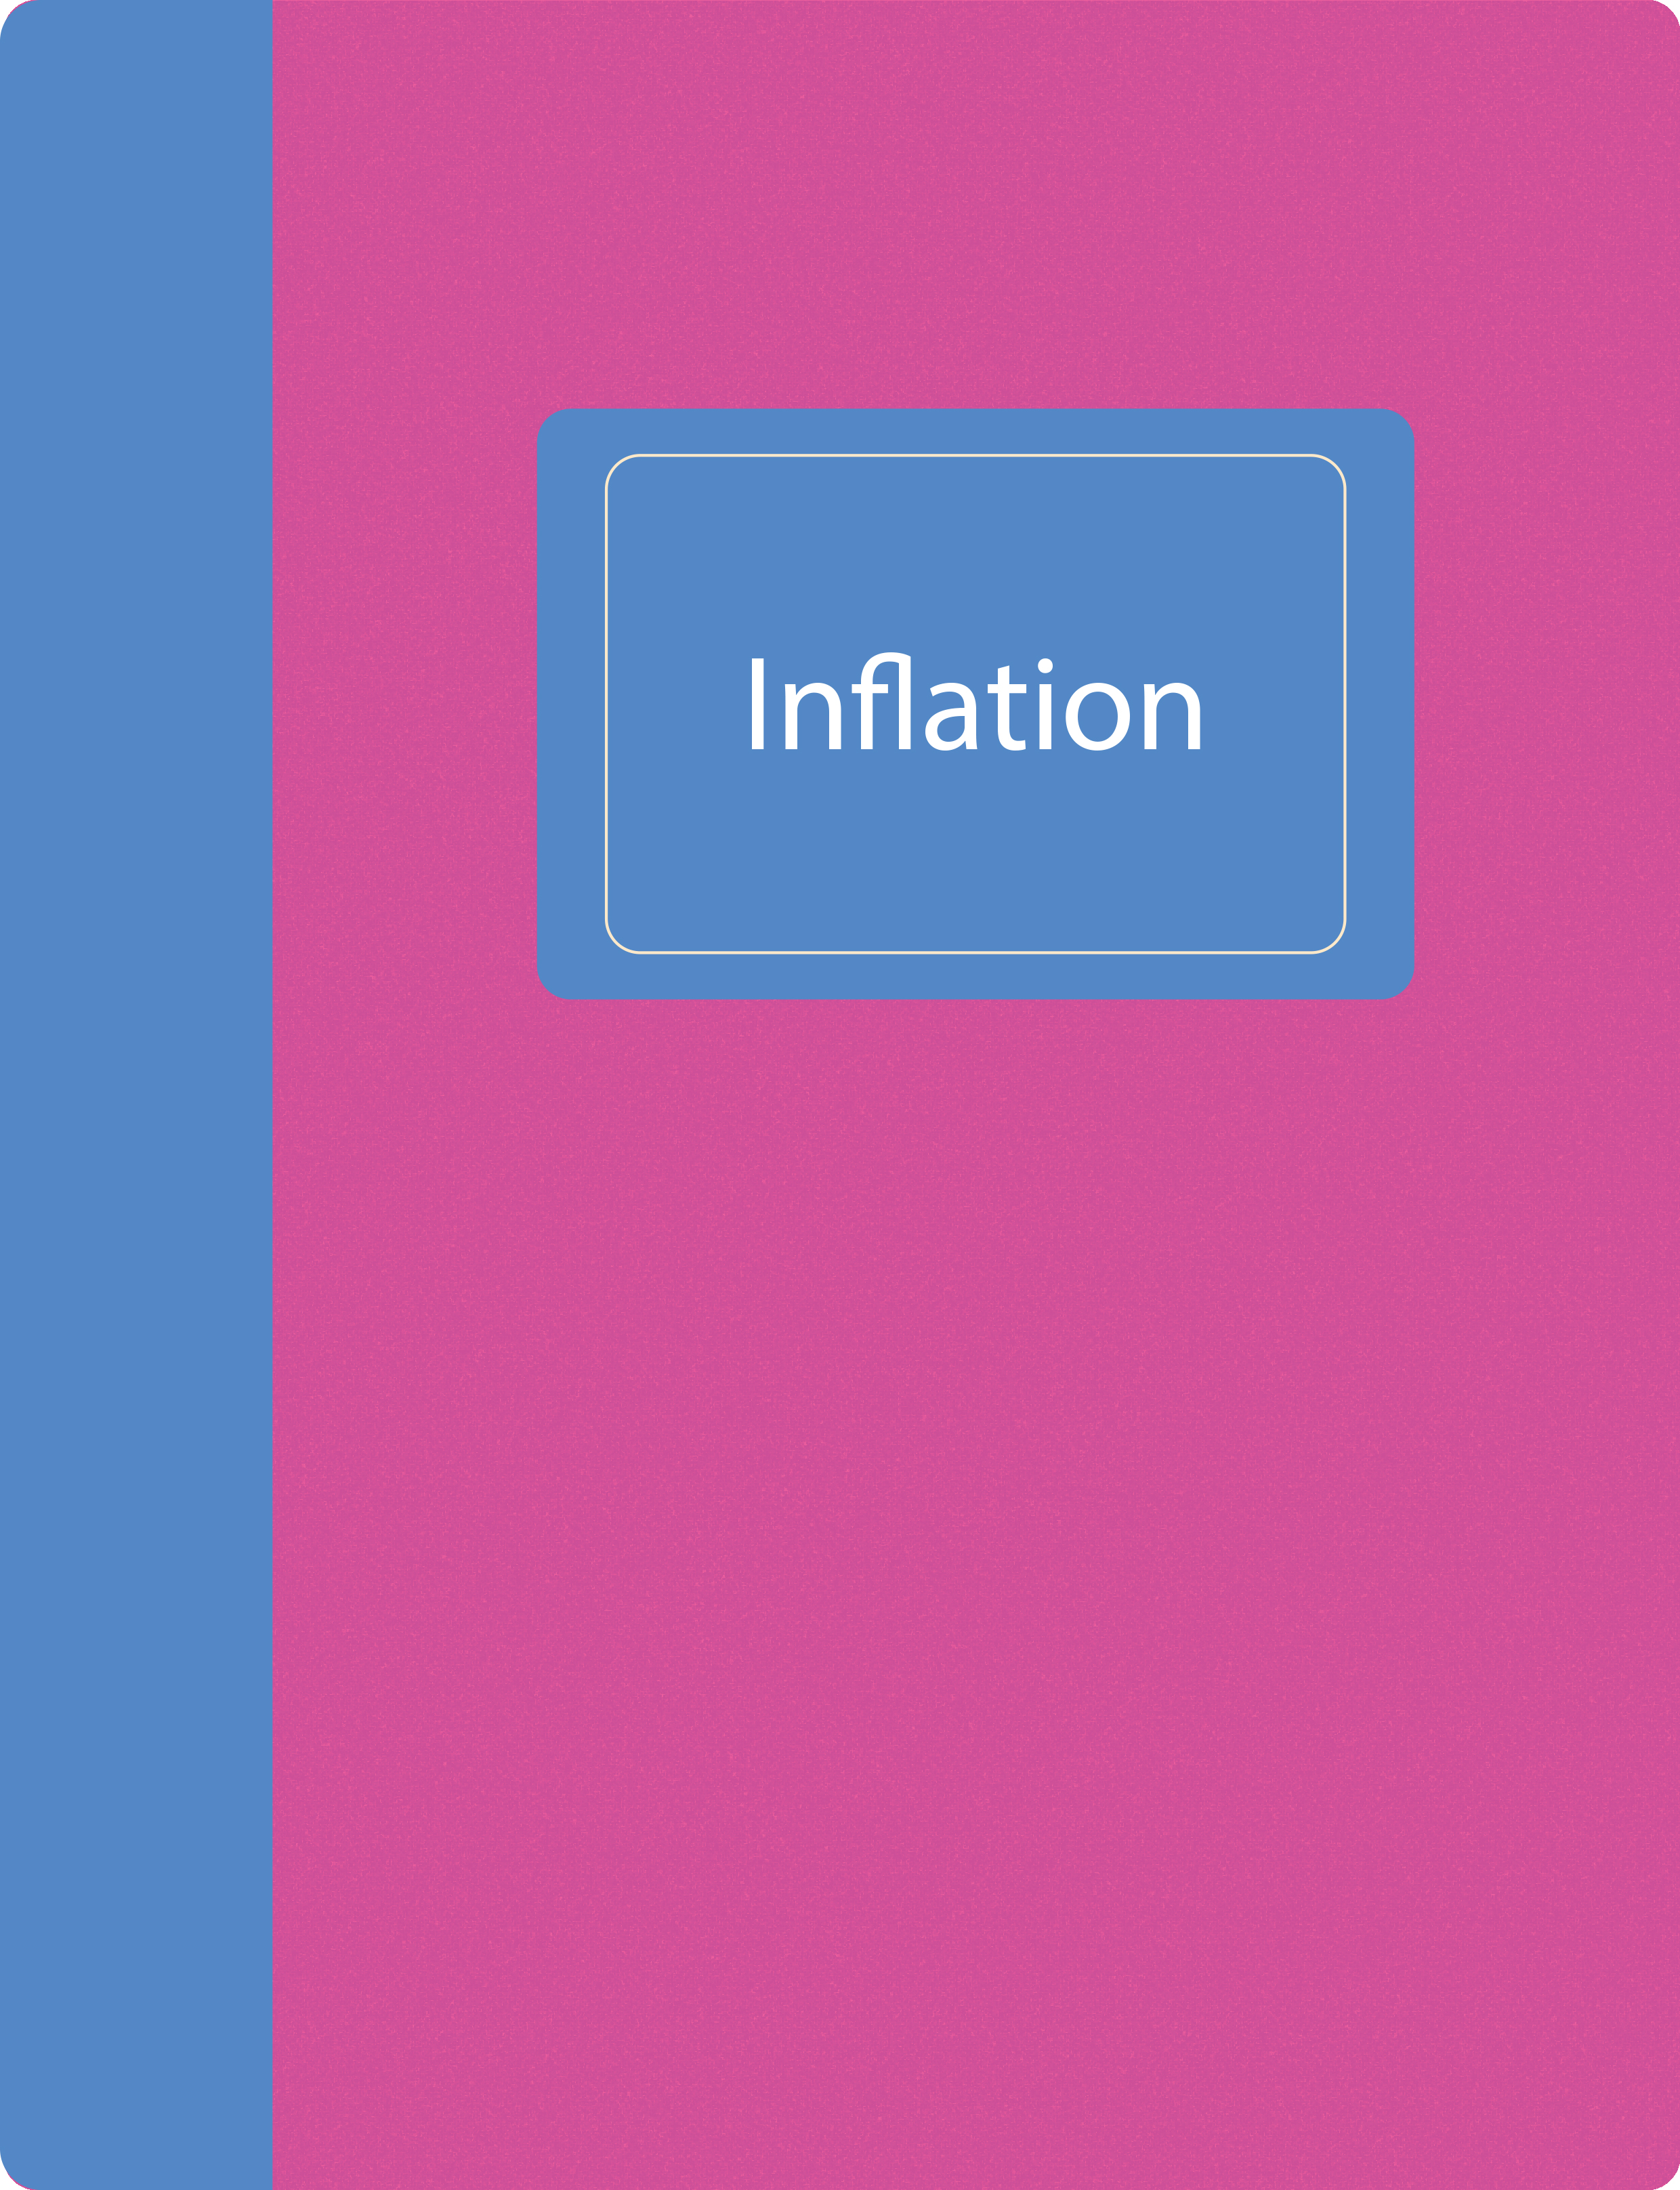 Cahier example theme2 inflation.jpg